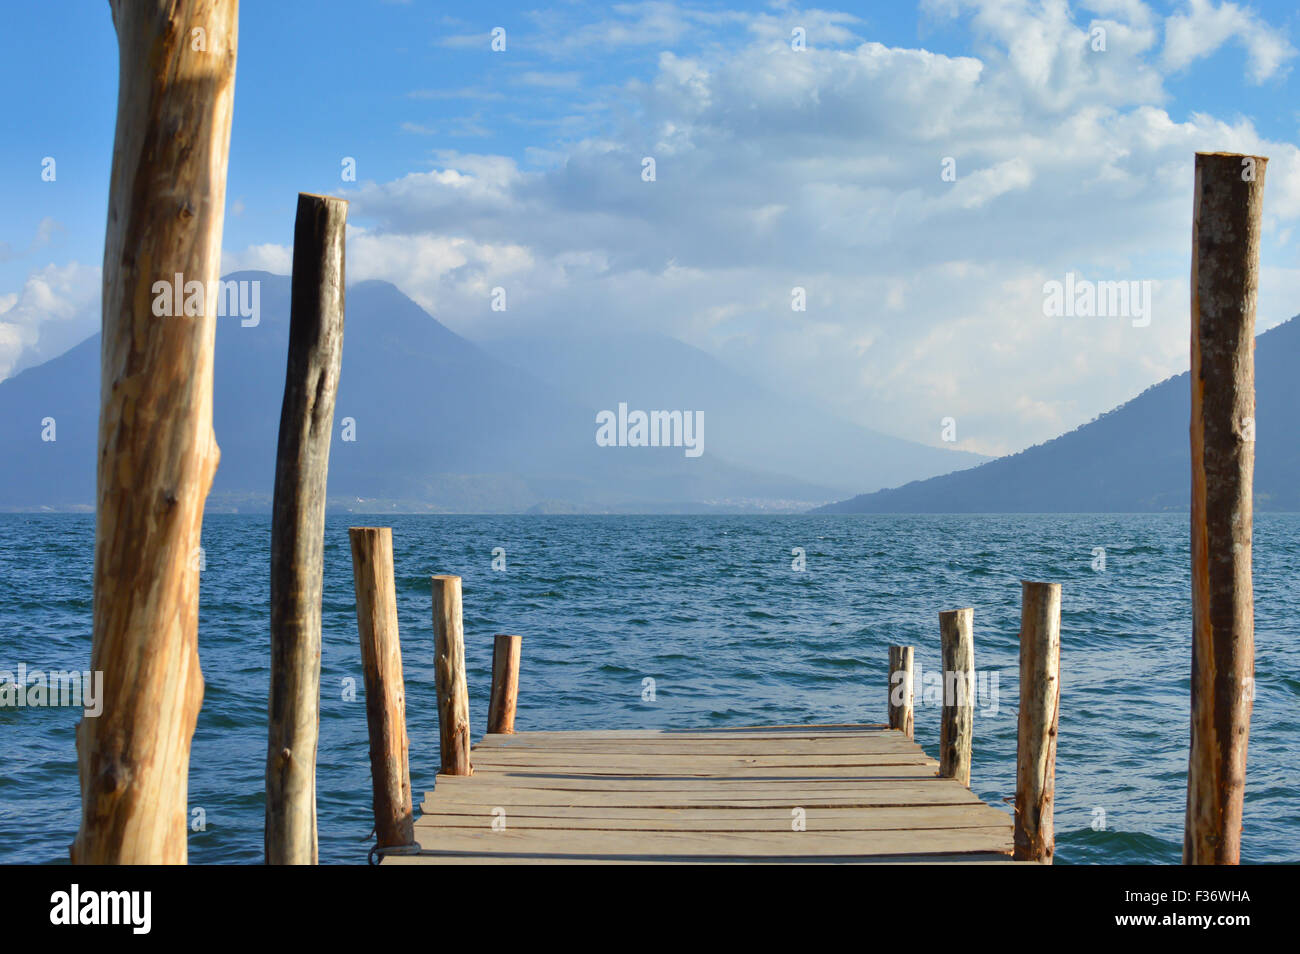 Boat dock at a small village of San Marcos on the Lake Atitlan in Guatemala with the volcanoes on the background - Stock Image